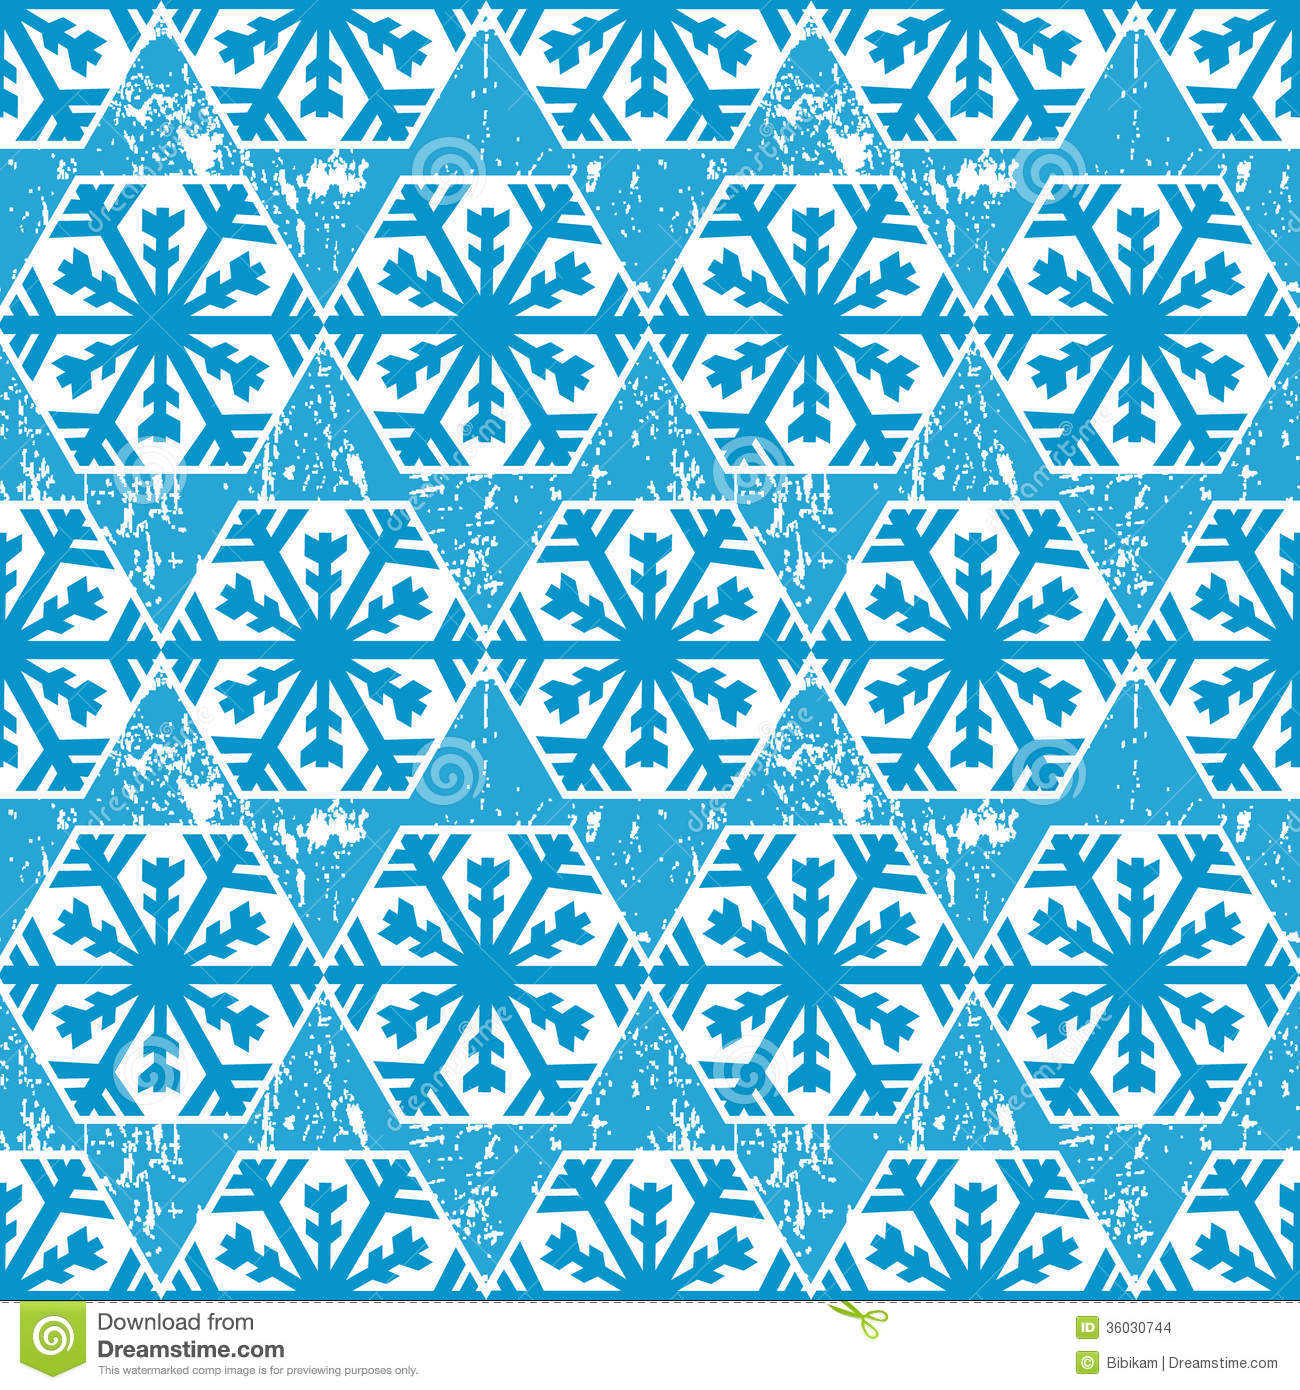 Christmas wrapping paper pattern, background with abstract snowflakes.